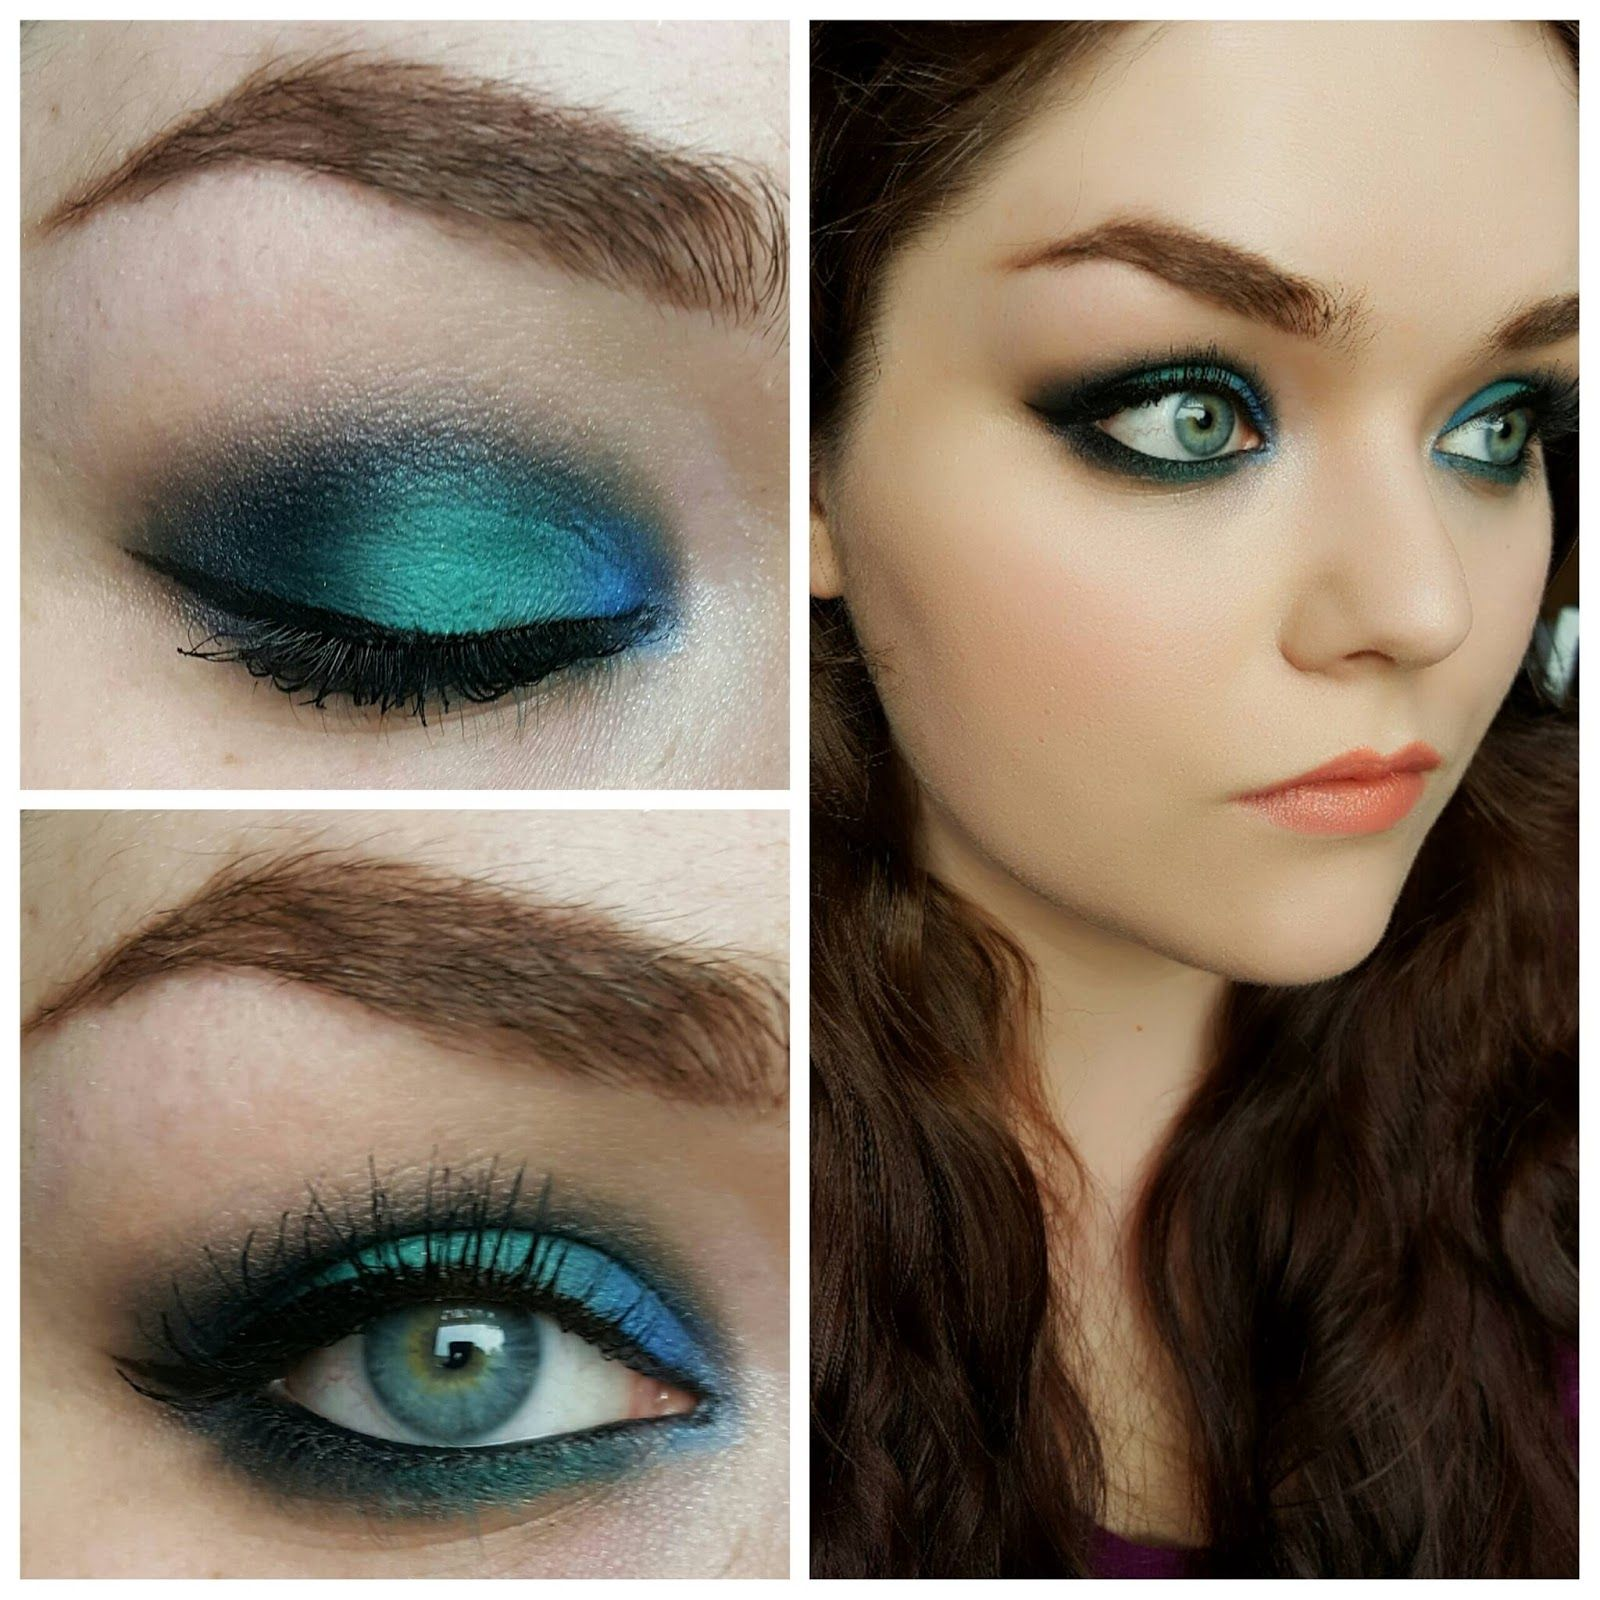 Urban decay alice in wonderland tutorial make up ideas urban decay alice in wonderland tutorial baditri Image collections